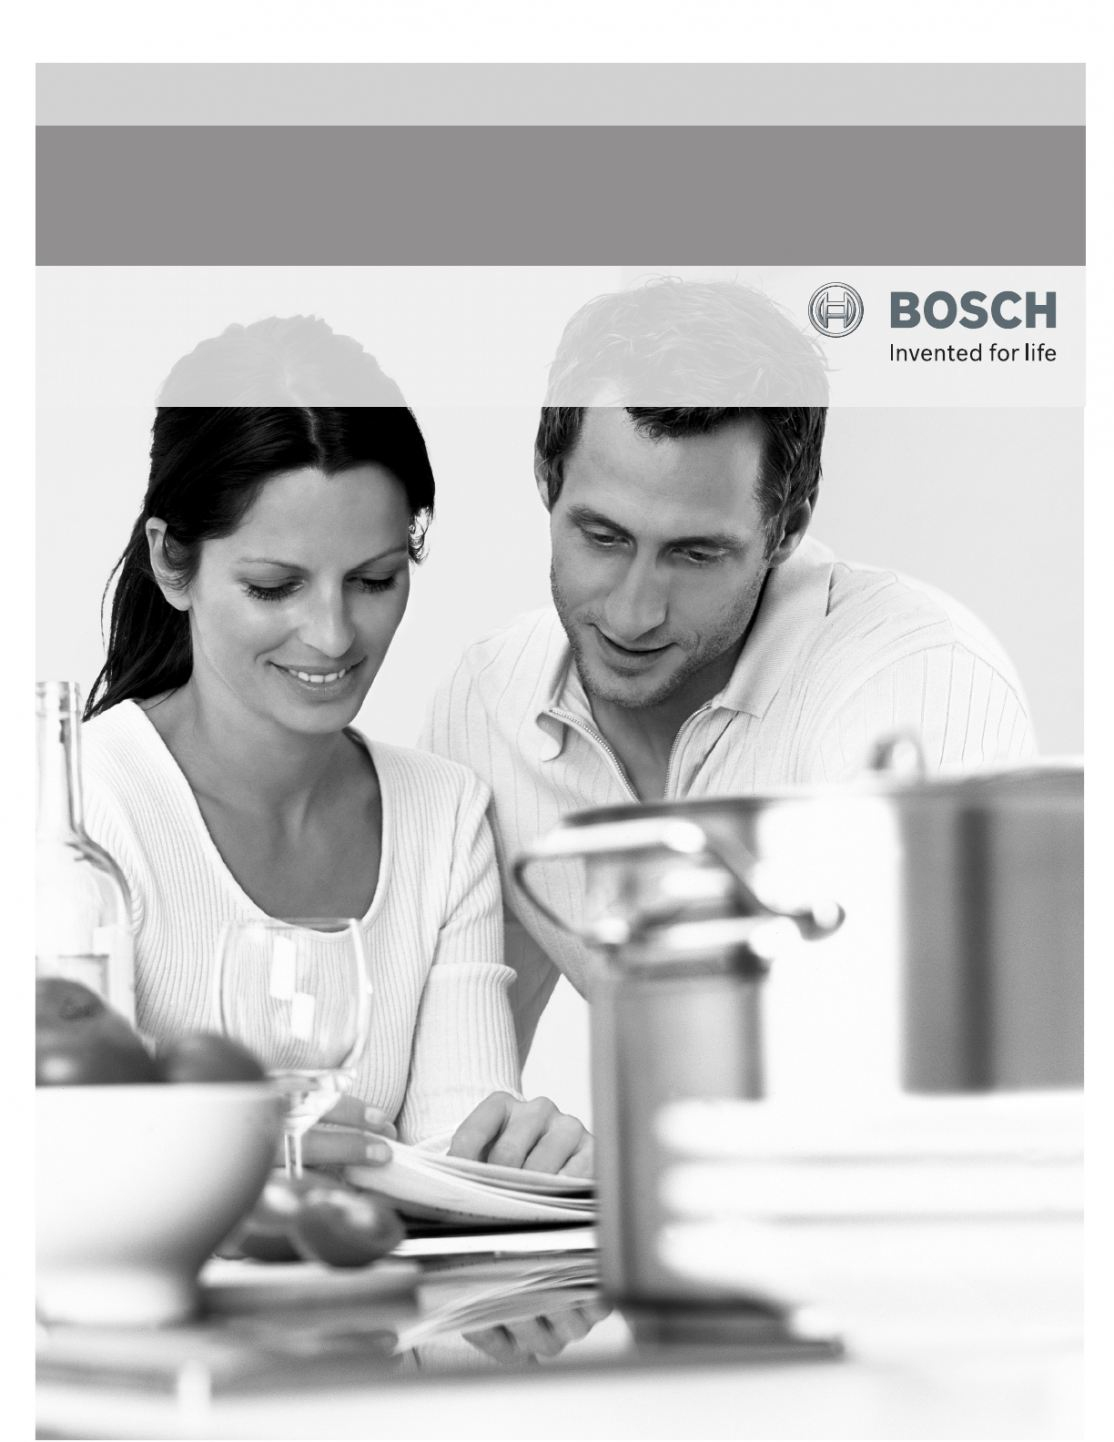 Table Induction Bosch Pil611b18e Élégant Galerie Bosch Induction Cooktop User Manual